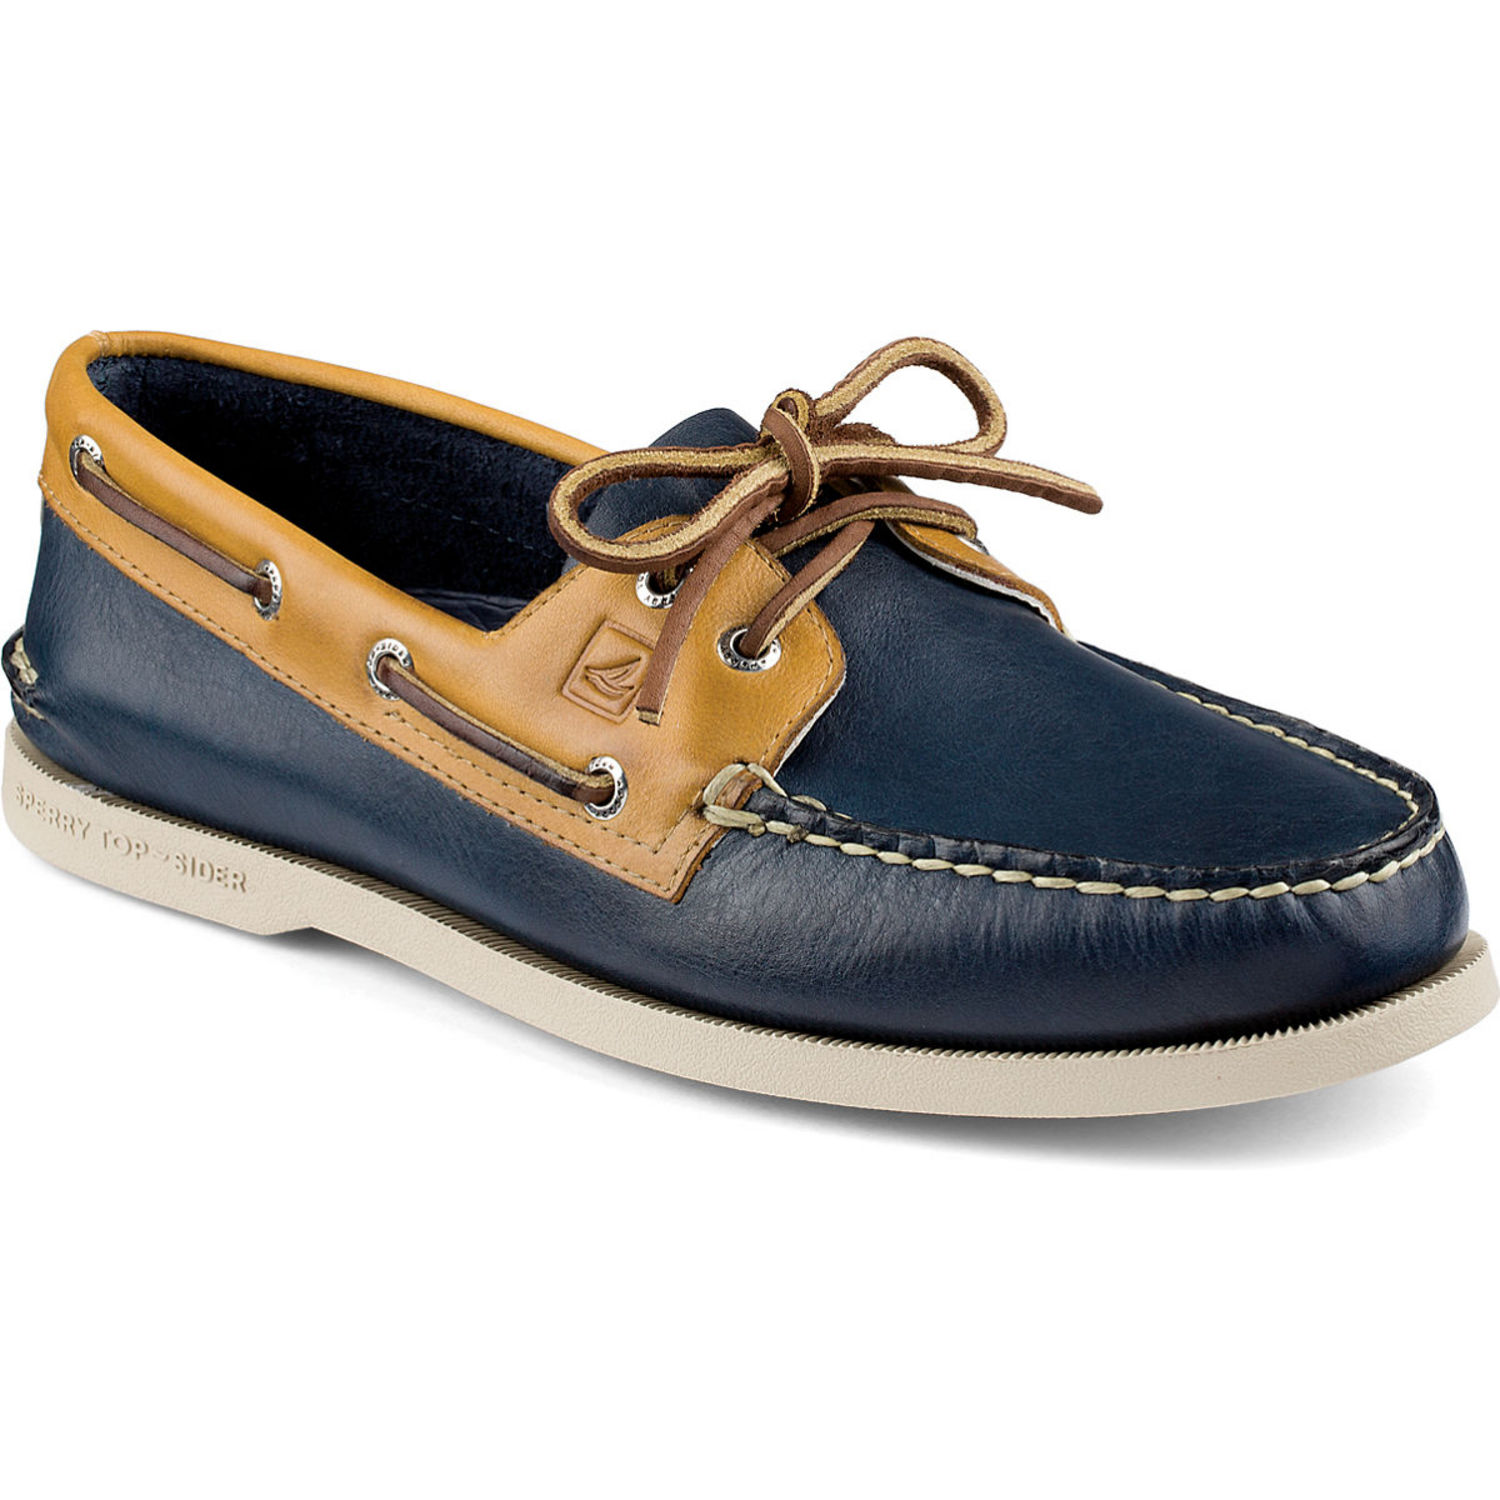 7a39b2dba7f Sperry Top-Sider Men s Authentic Original Two-Tone 2-Eye Boat Shoes